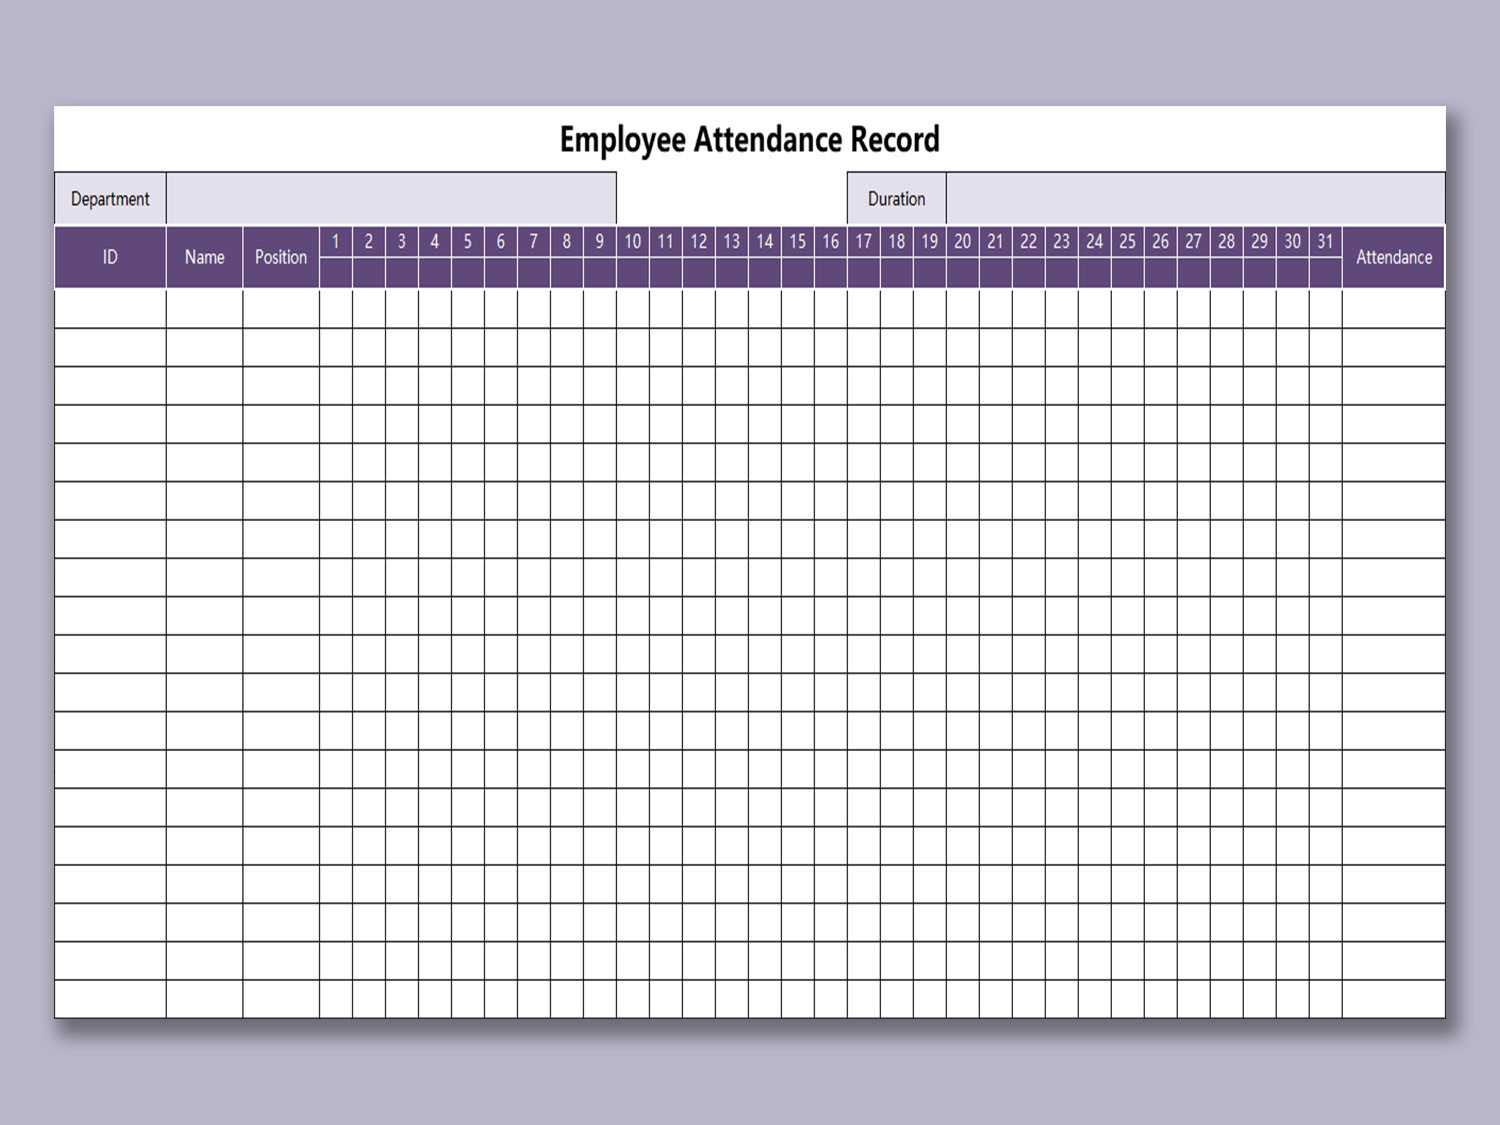 Employee Attendance Record Template Excel Free Download